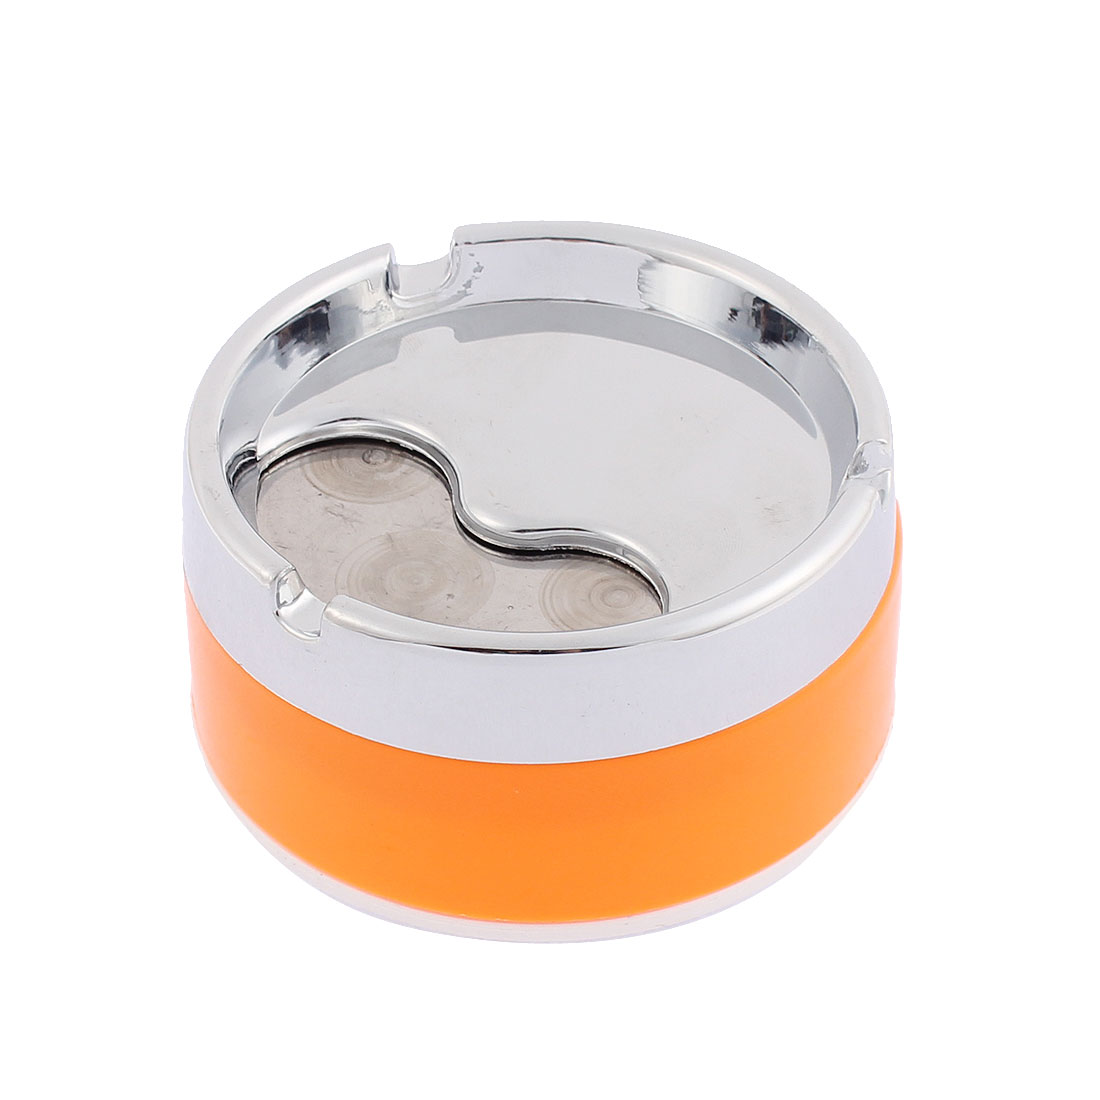 Home Office Metal Rotary Lid Cigarette Ashtray Ash Holder Container Orange